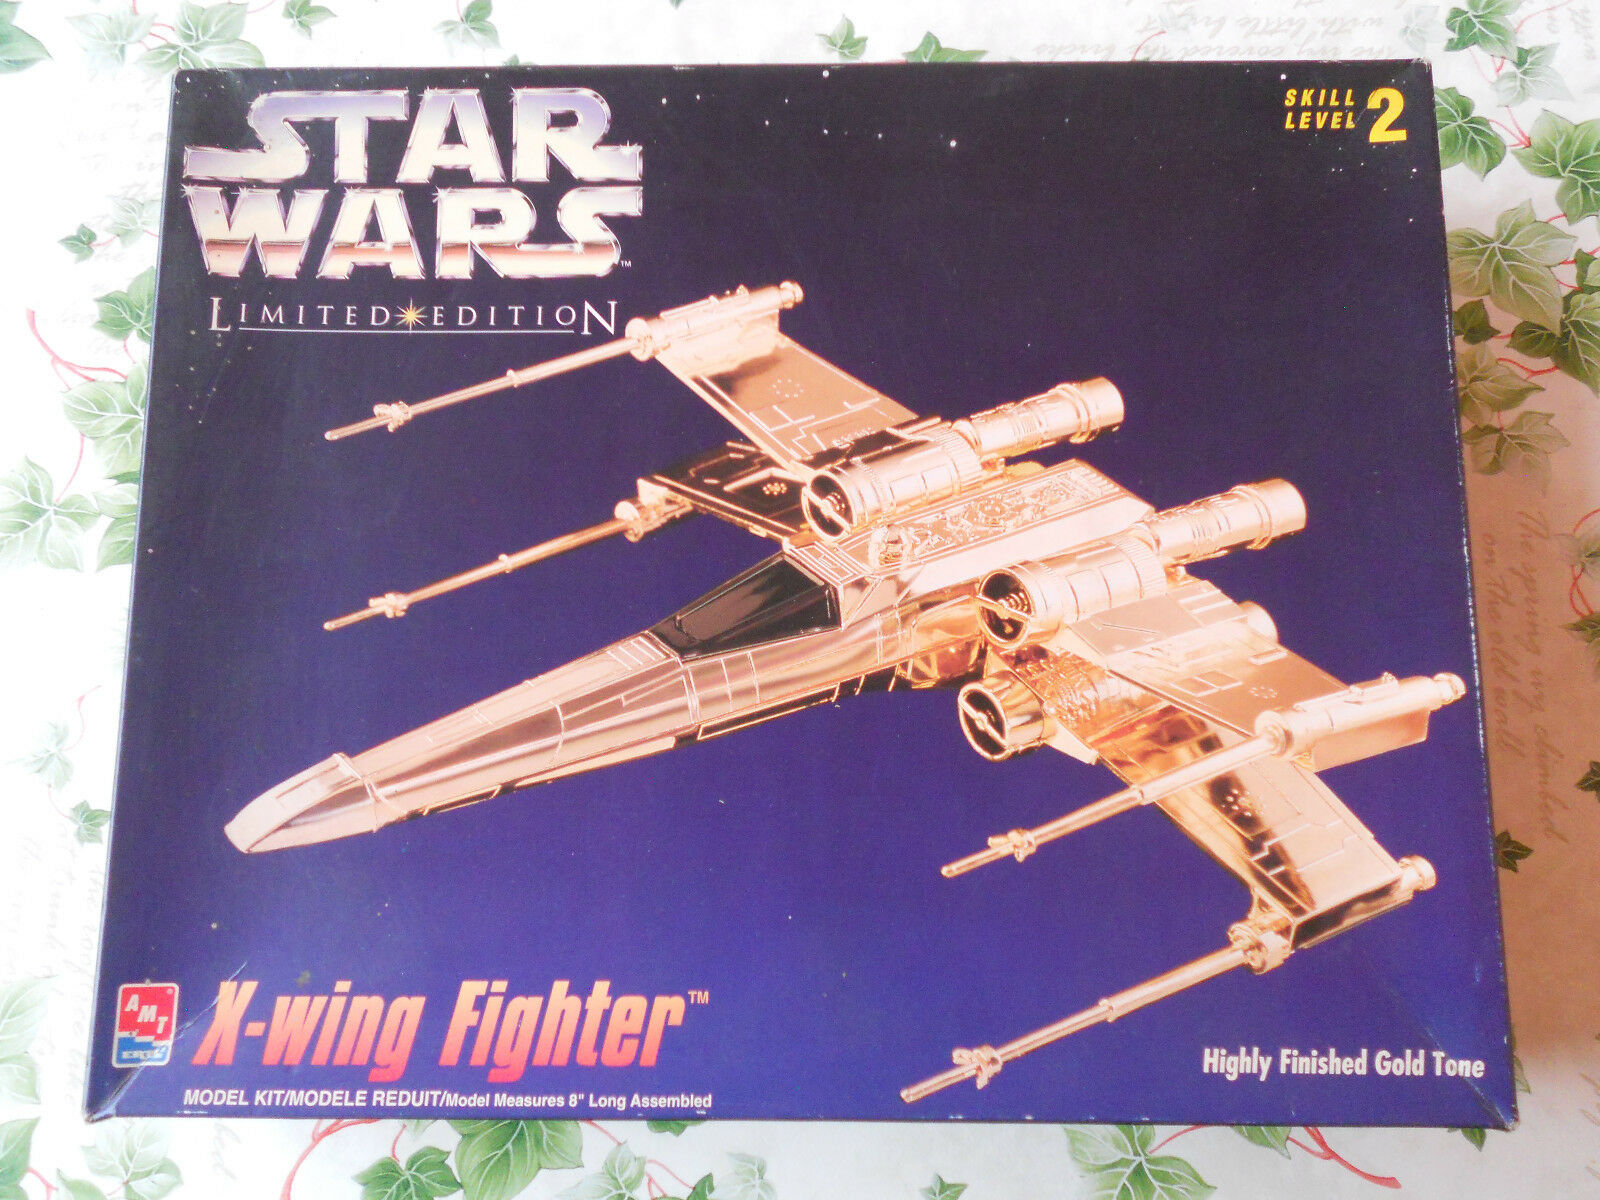 FLO25 - SCATOLA VUOTA STAR WARS X-WING FIGHTER LIMITED EDITION 1995